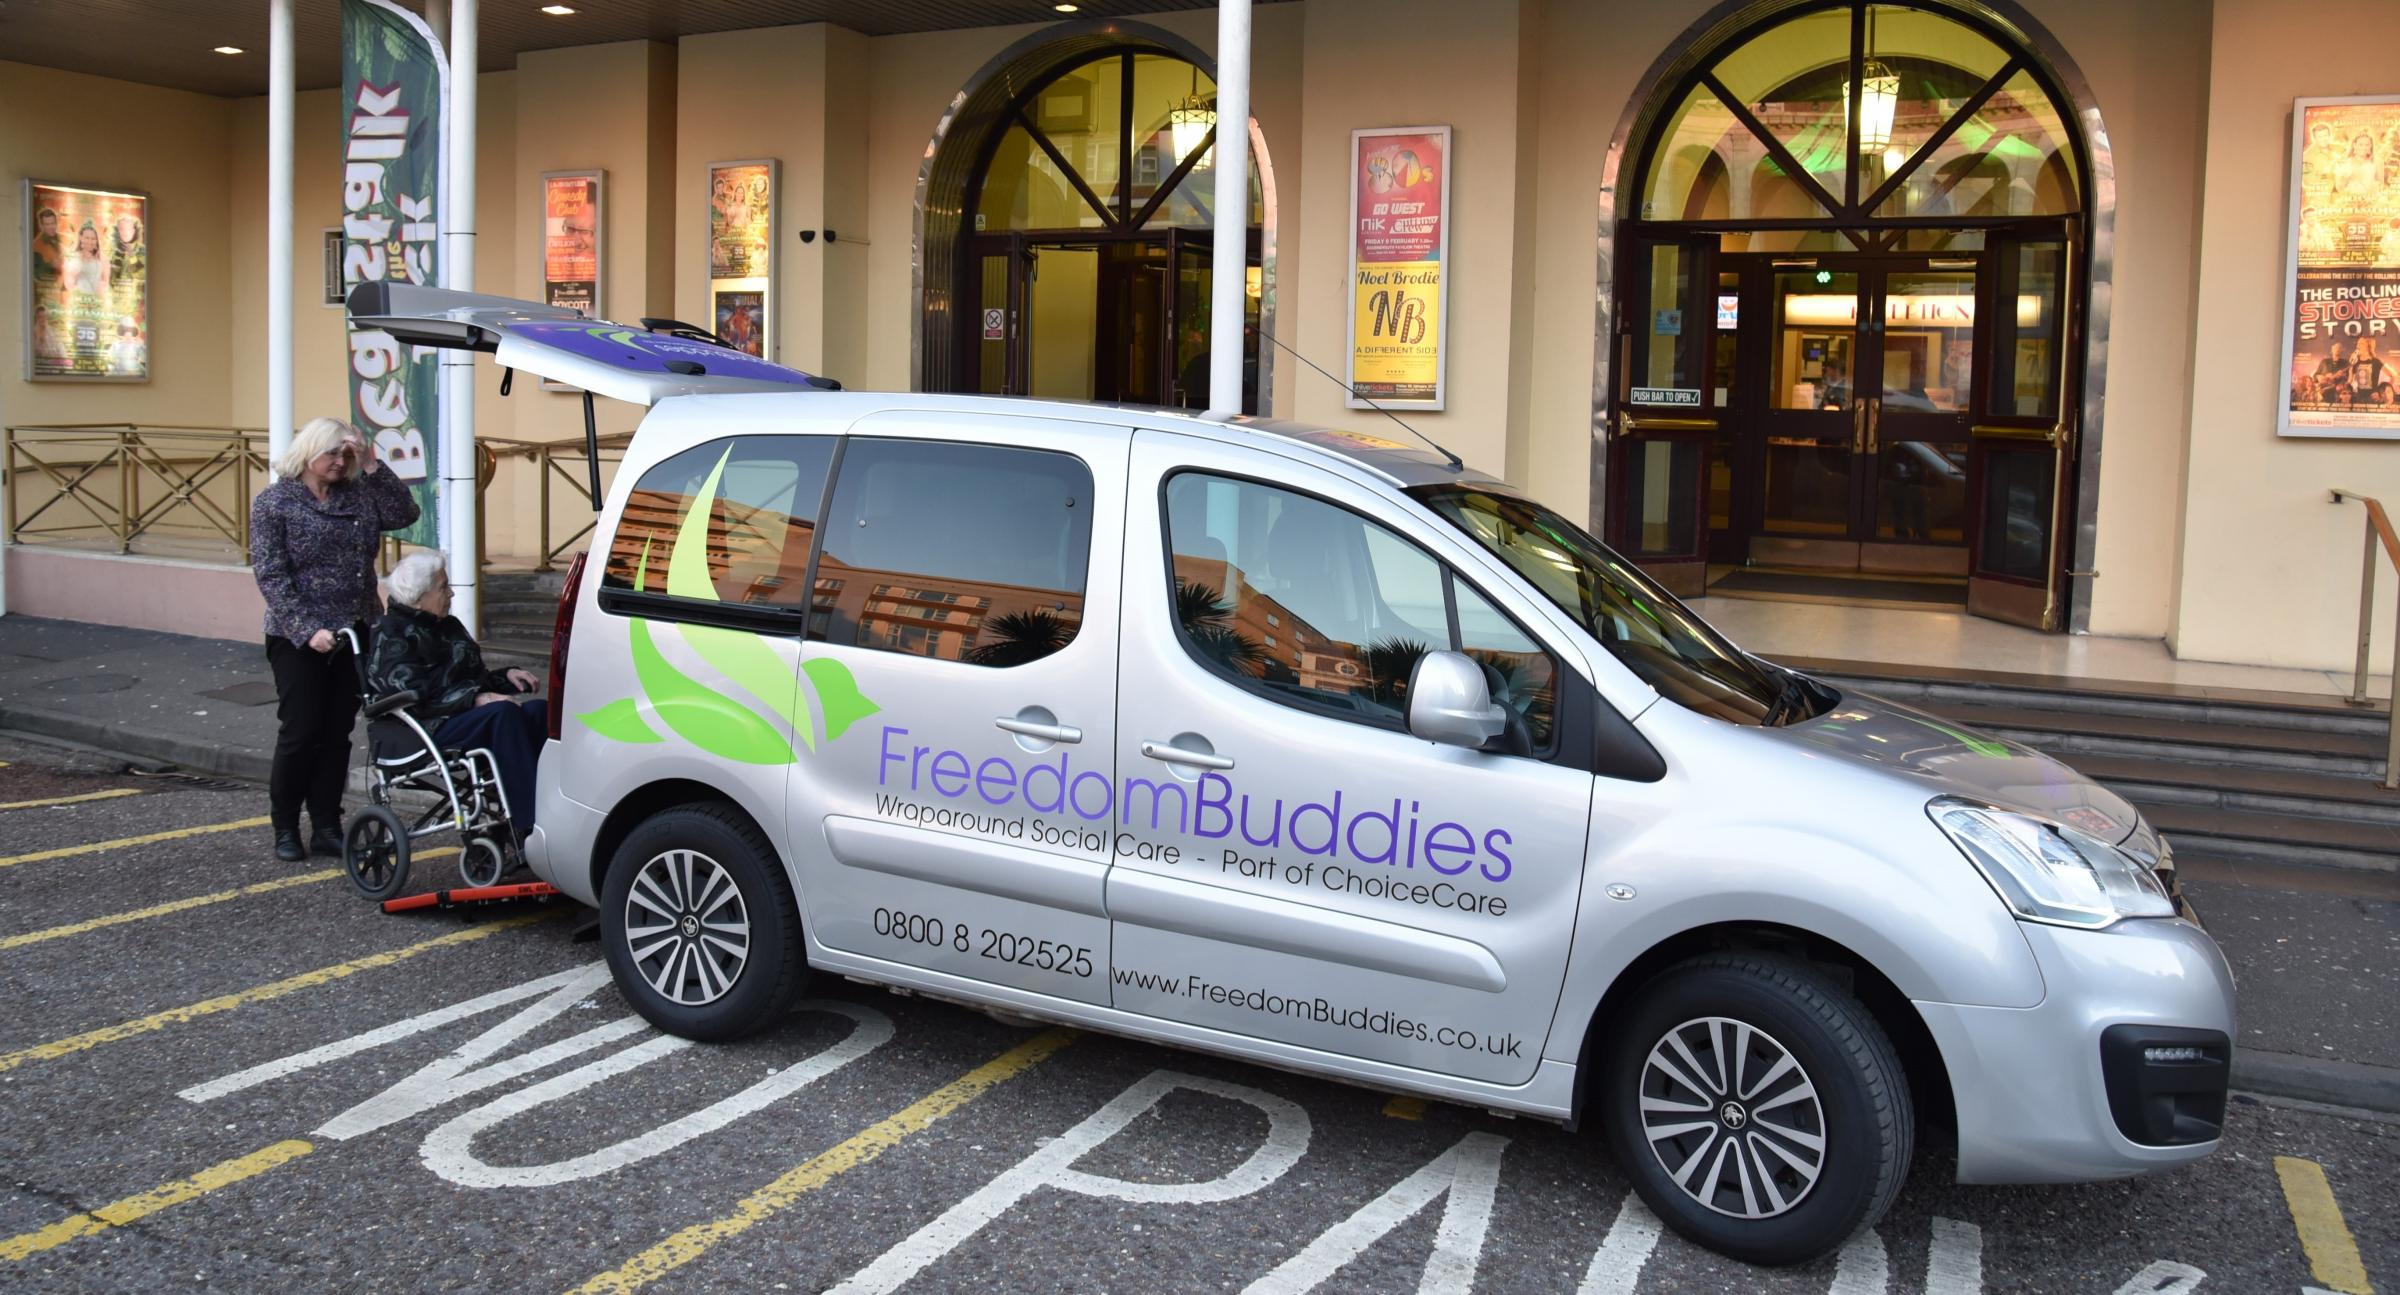 Freedom Buddies, a new care support service, is launching in Blackburn this week